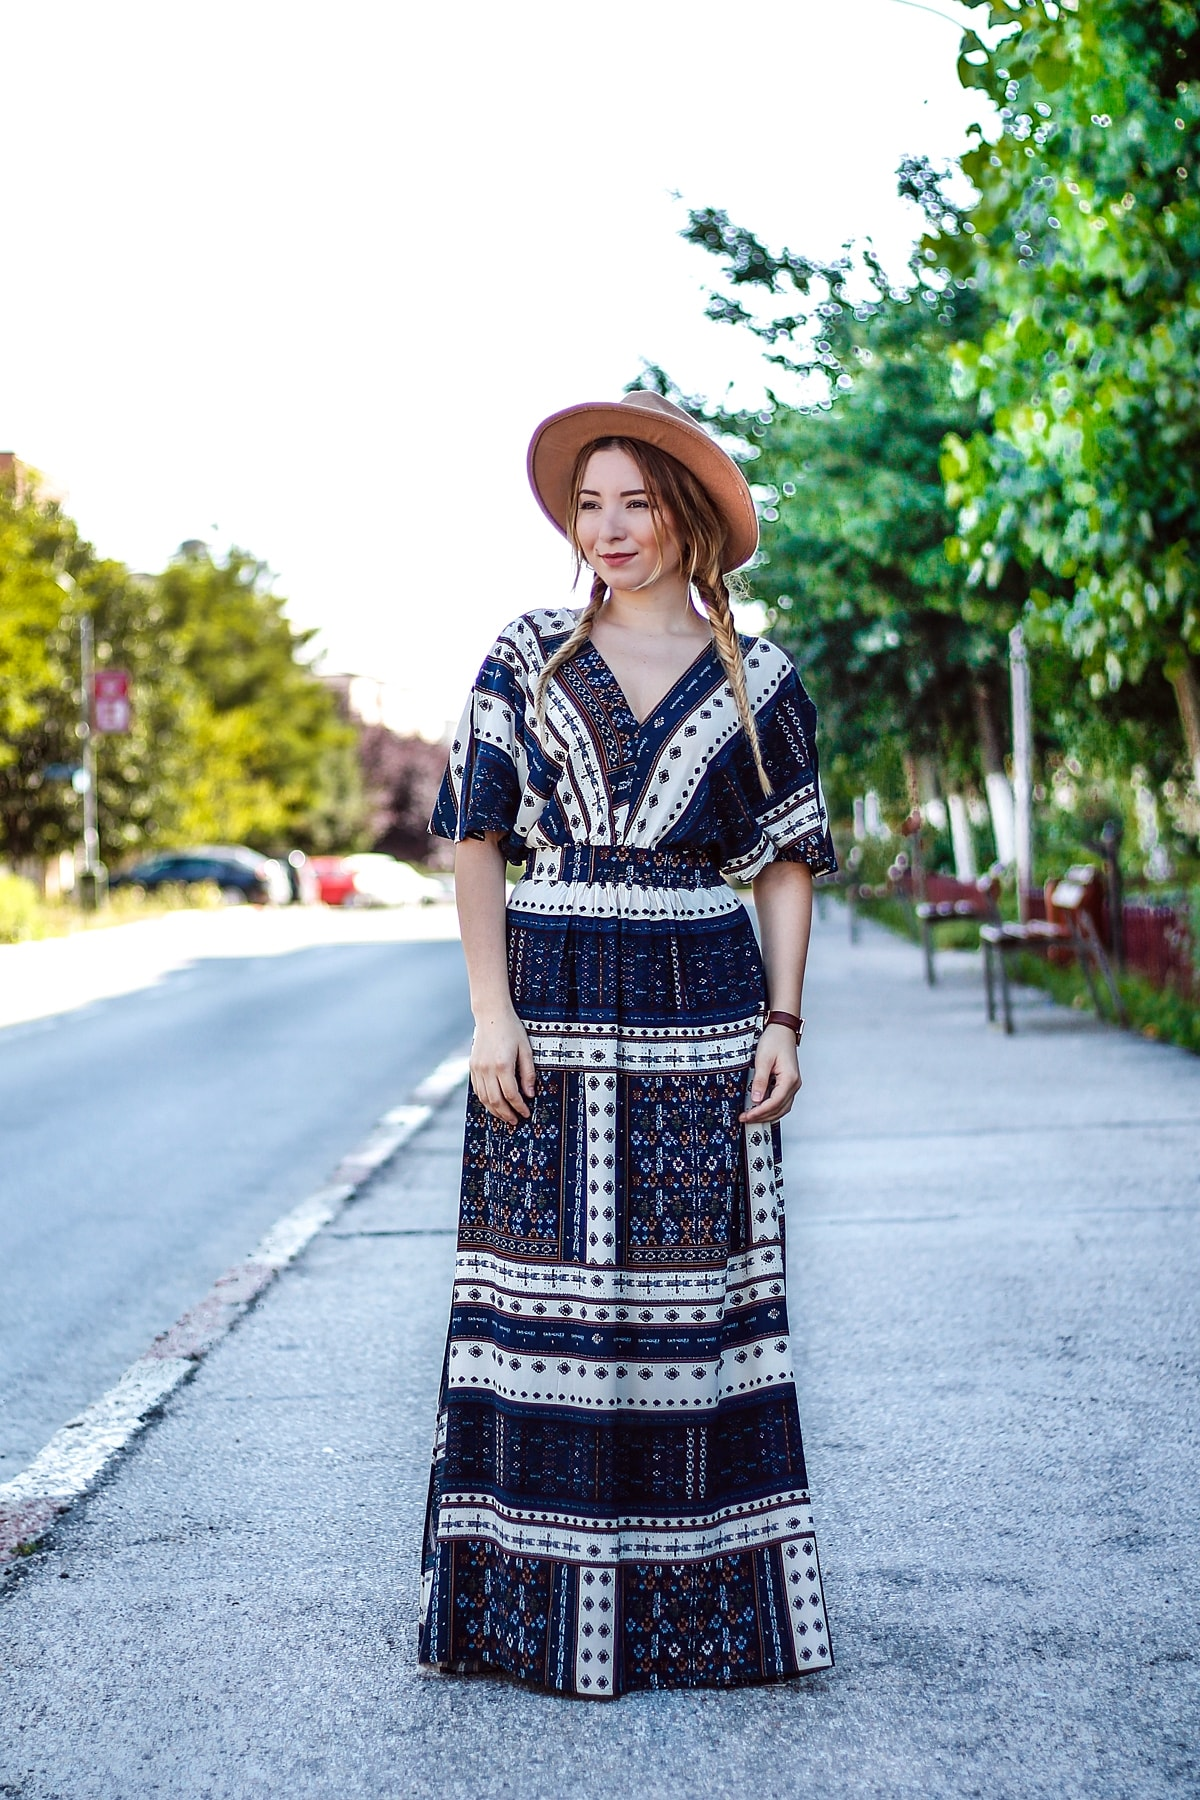 Street style - hippie maxi dress, camel hat, nude sandals, summer look, andreea ristea blog